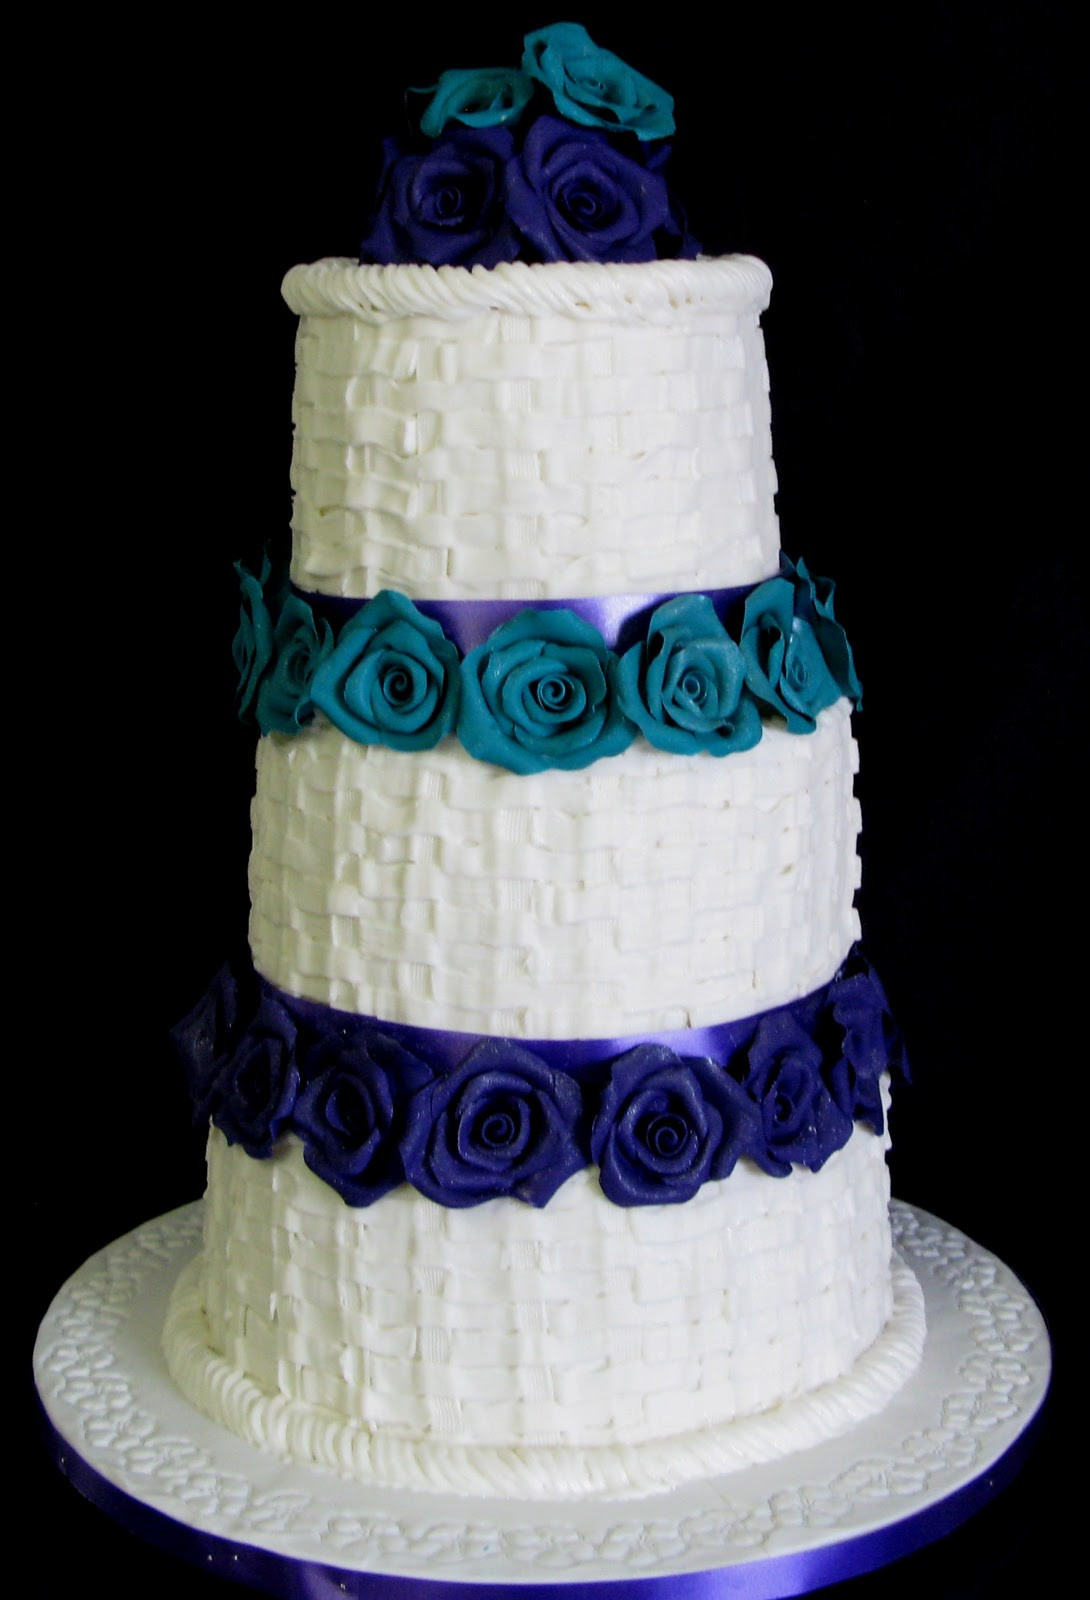 Turquoise And Purple Wedding Cakes  Sugarcraft by Soni Three Tier Wedding Cake Tiers of